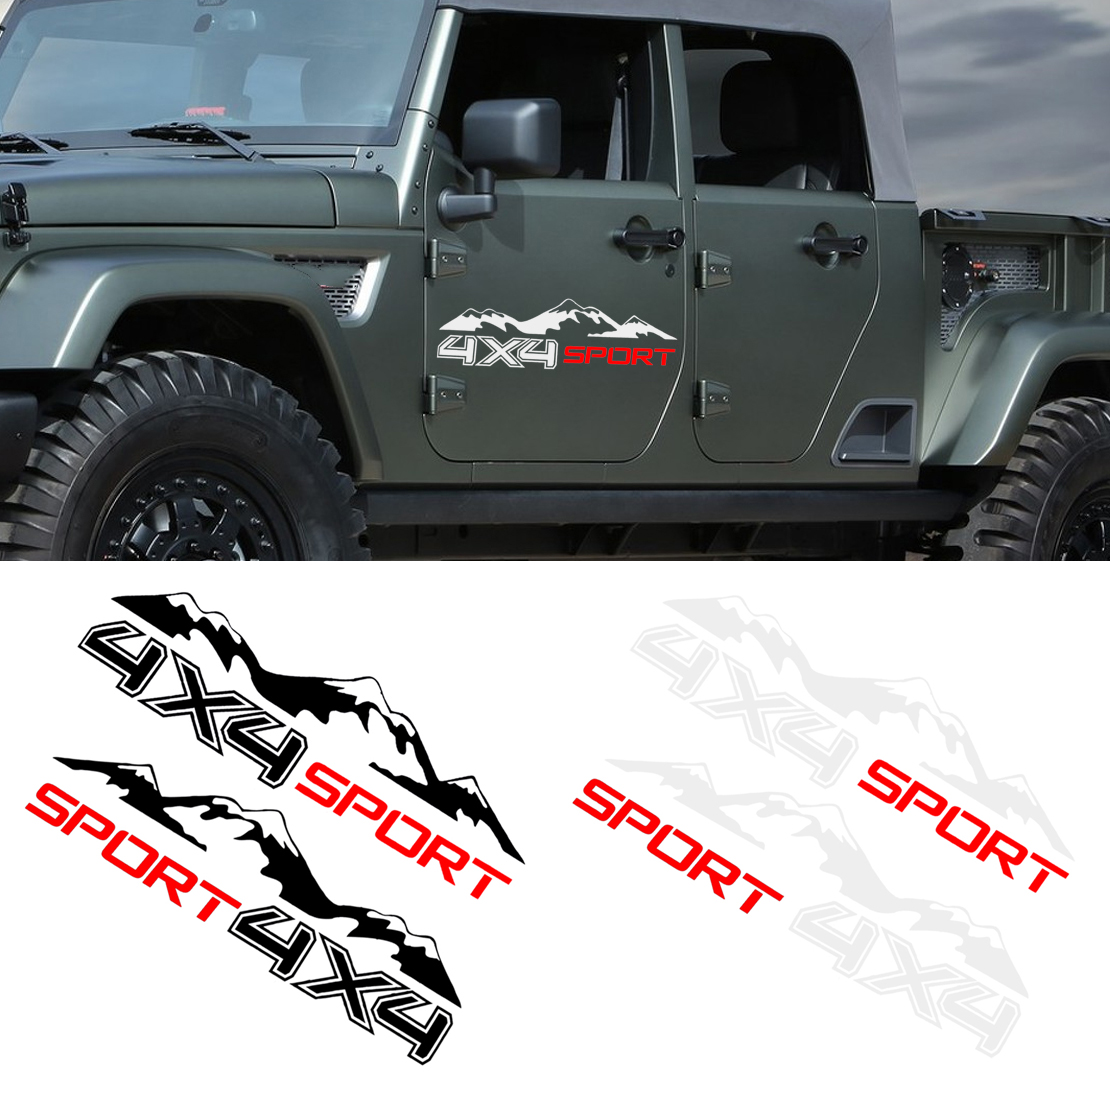 DWCX 2Pcs Car DIY Graphic Vinyl <font><b>4X4</b></font> Mountain <font><b>Stickers</b></font> Decal Decor Waterproof For <font><b>Off</b></font> <font><b>Road</b></font> Truck SUV Pickup image